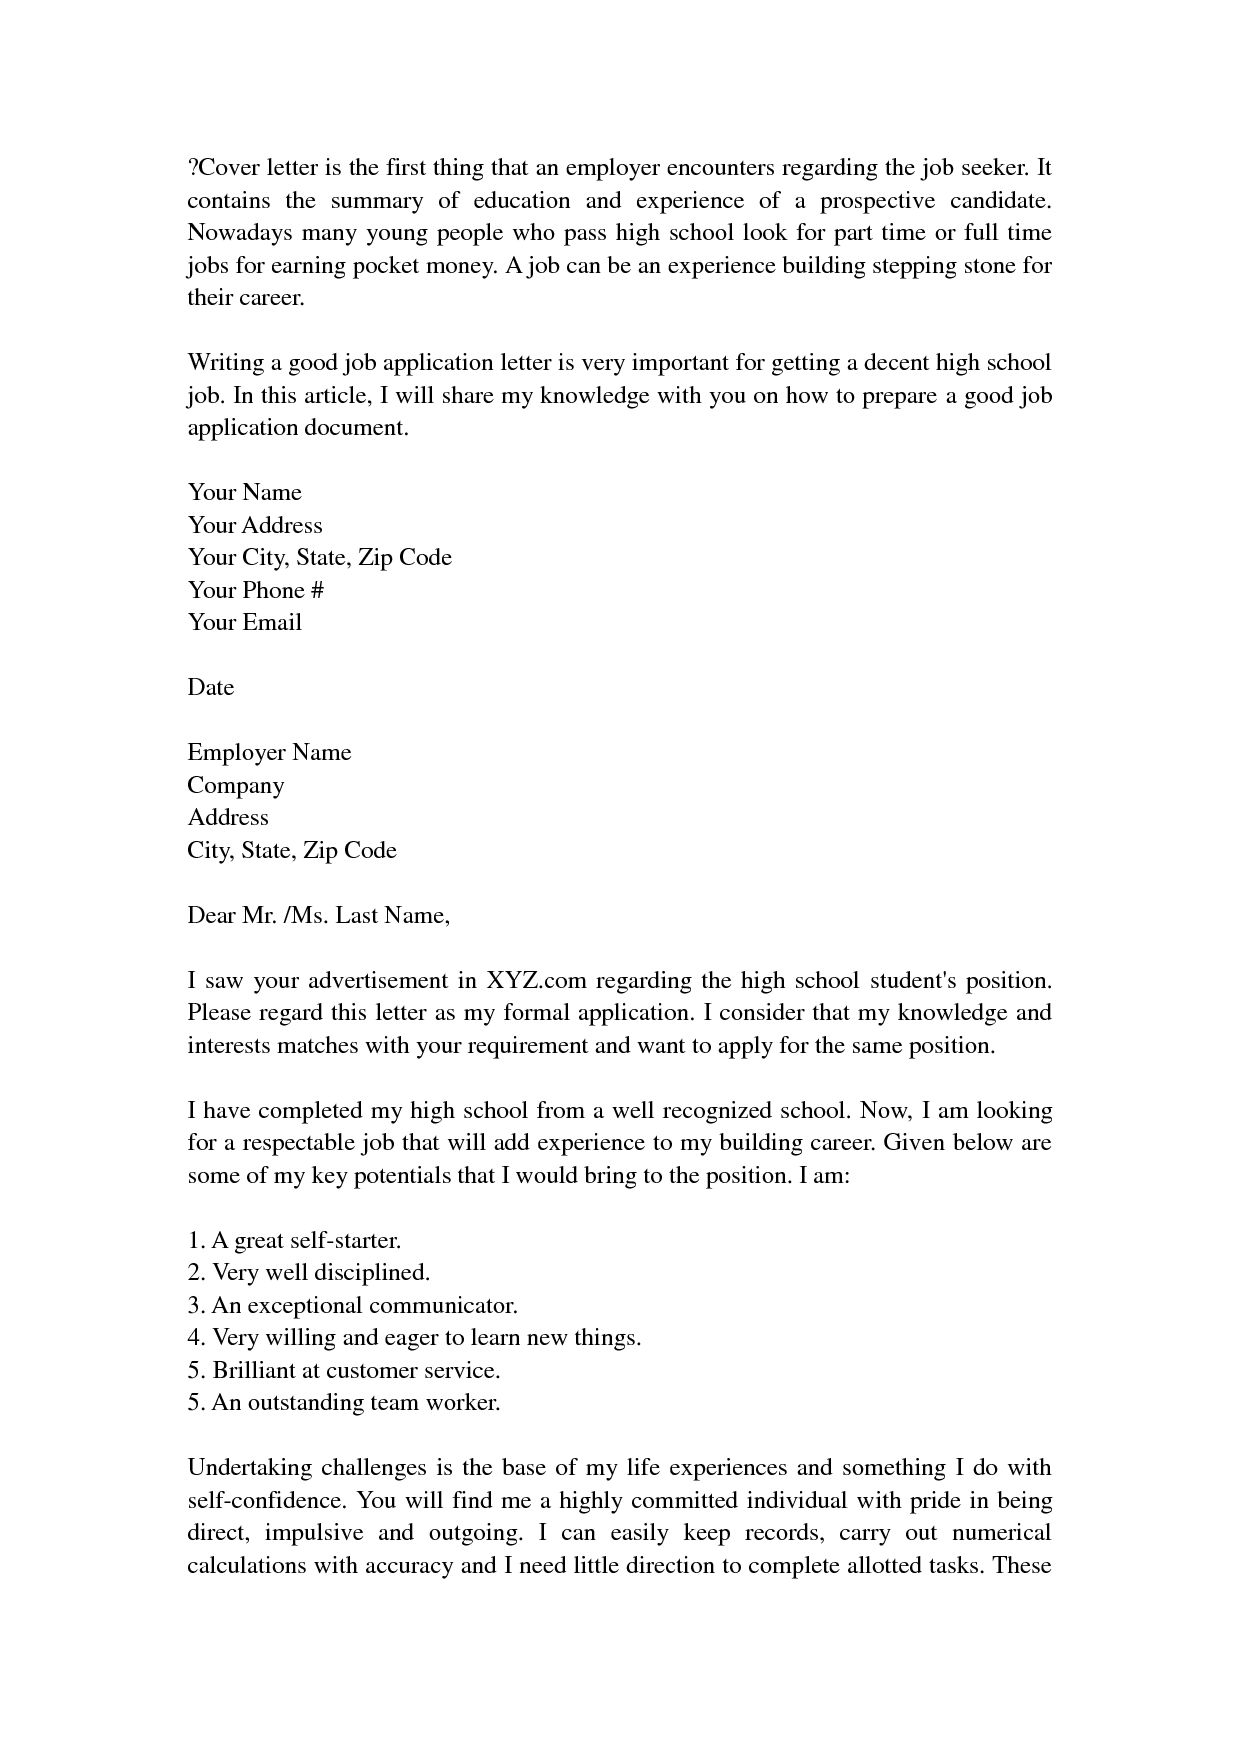 Cover letter examples high school student sample cover letters for high school students fresh altavistaventures Gallery